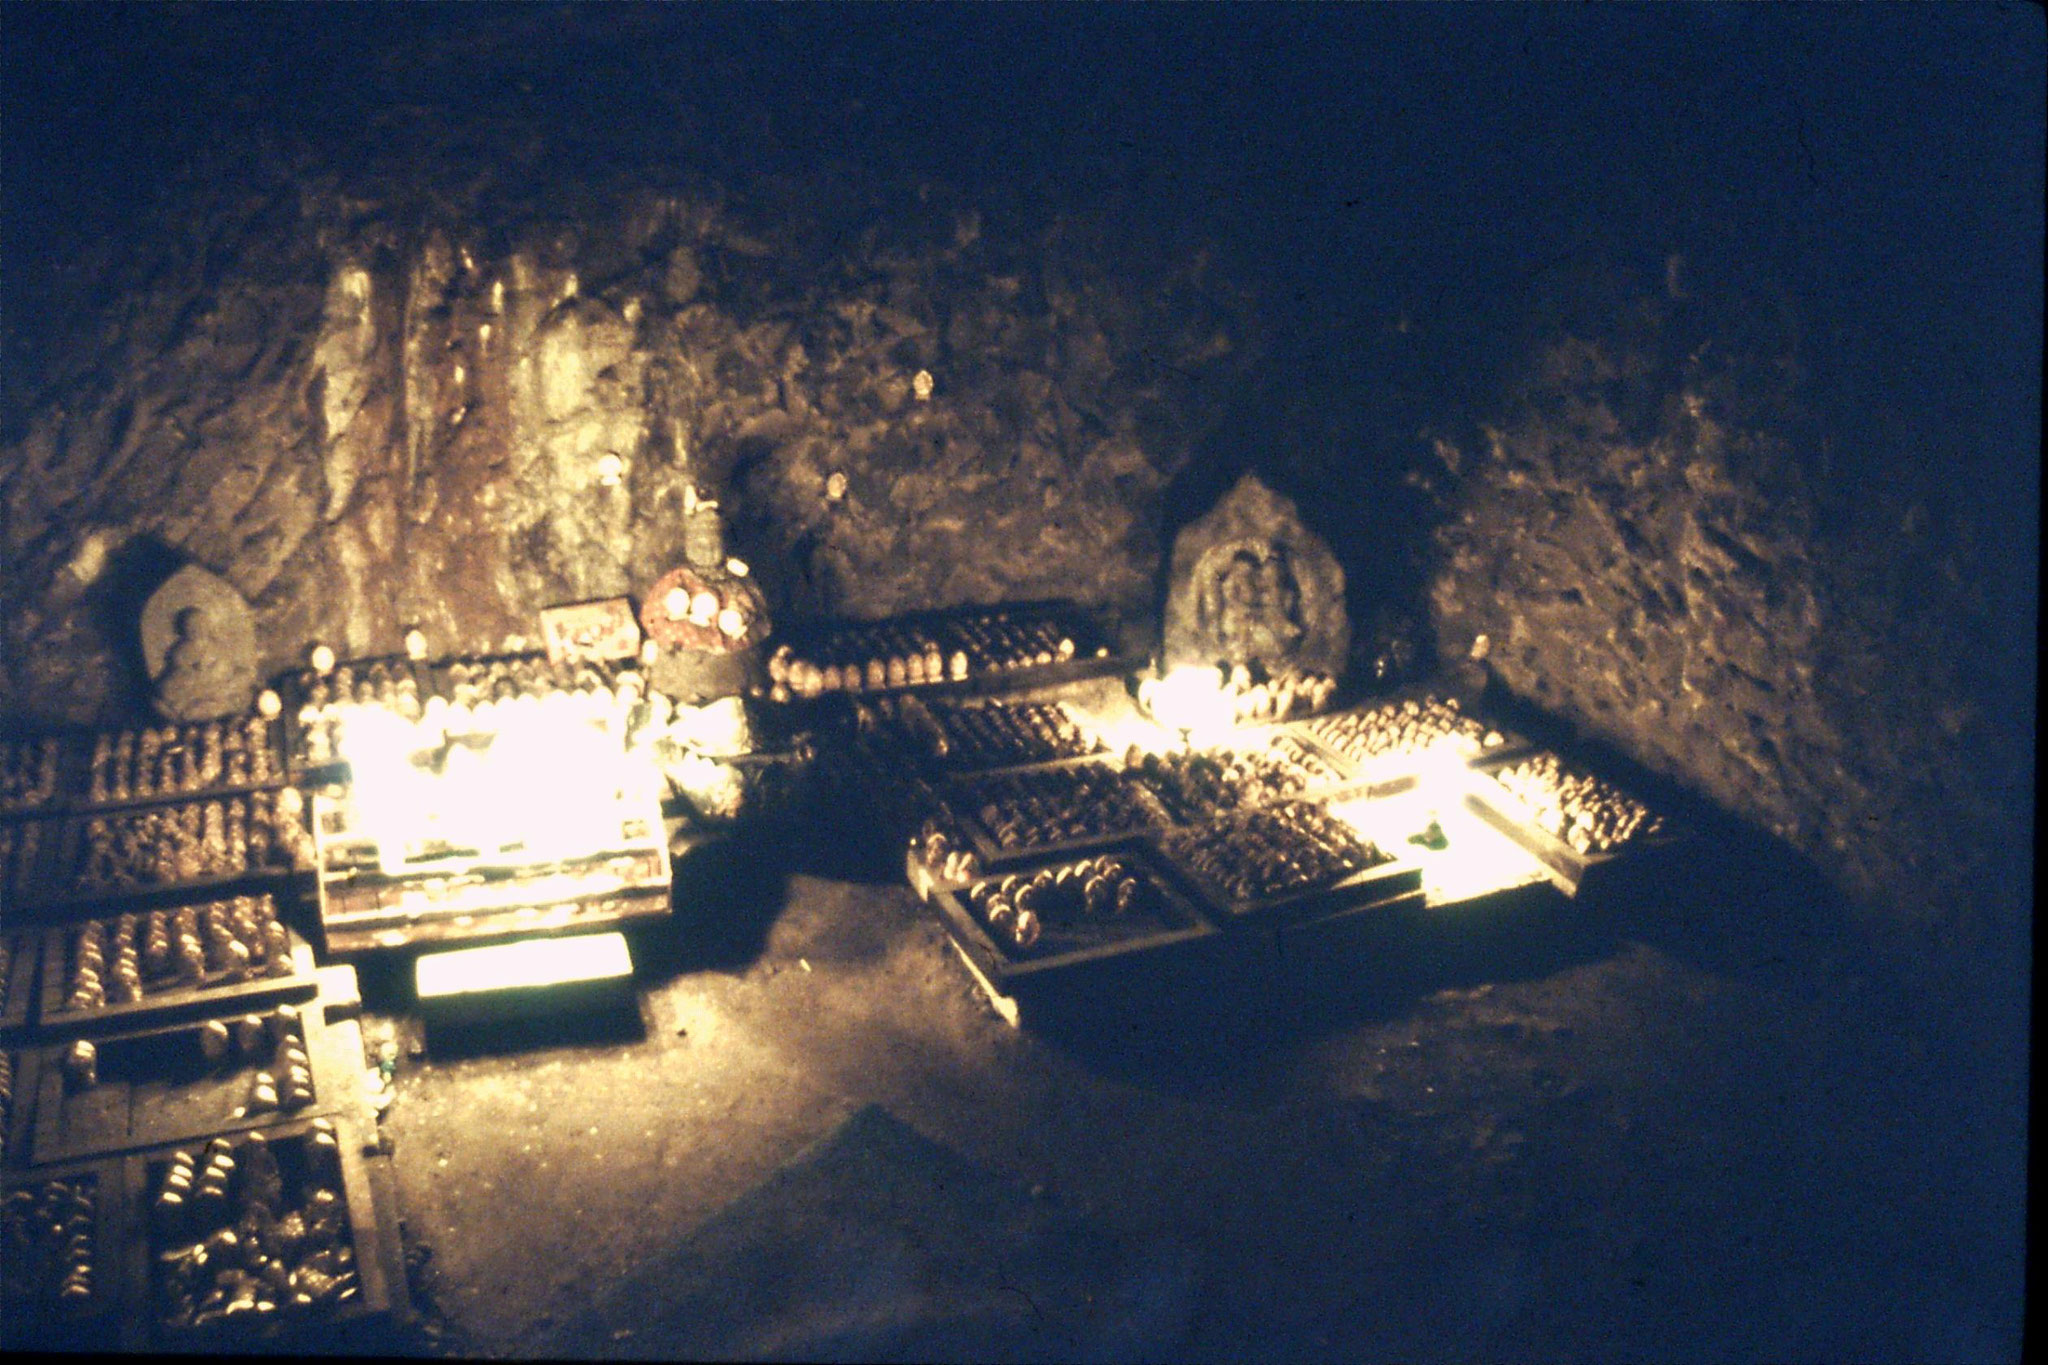 29/1/1989: 40: grotto